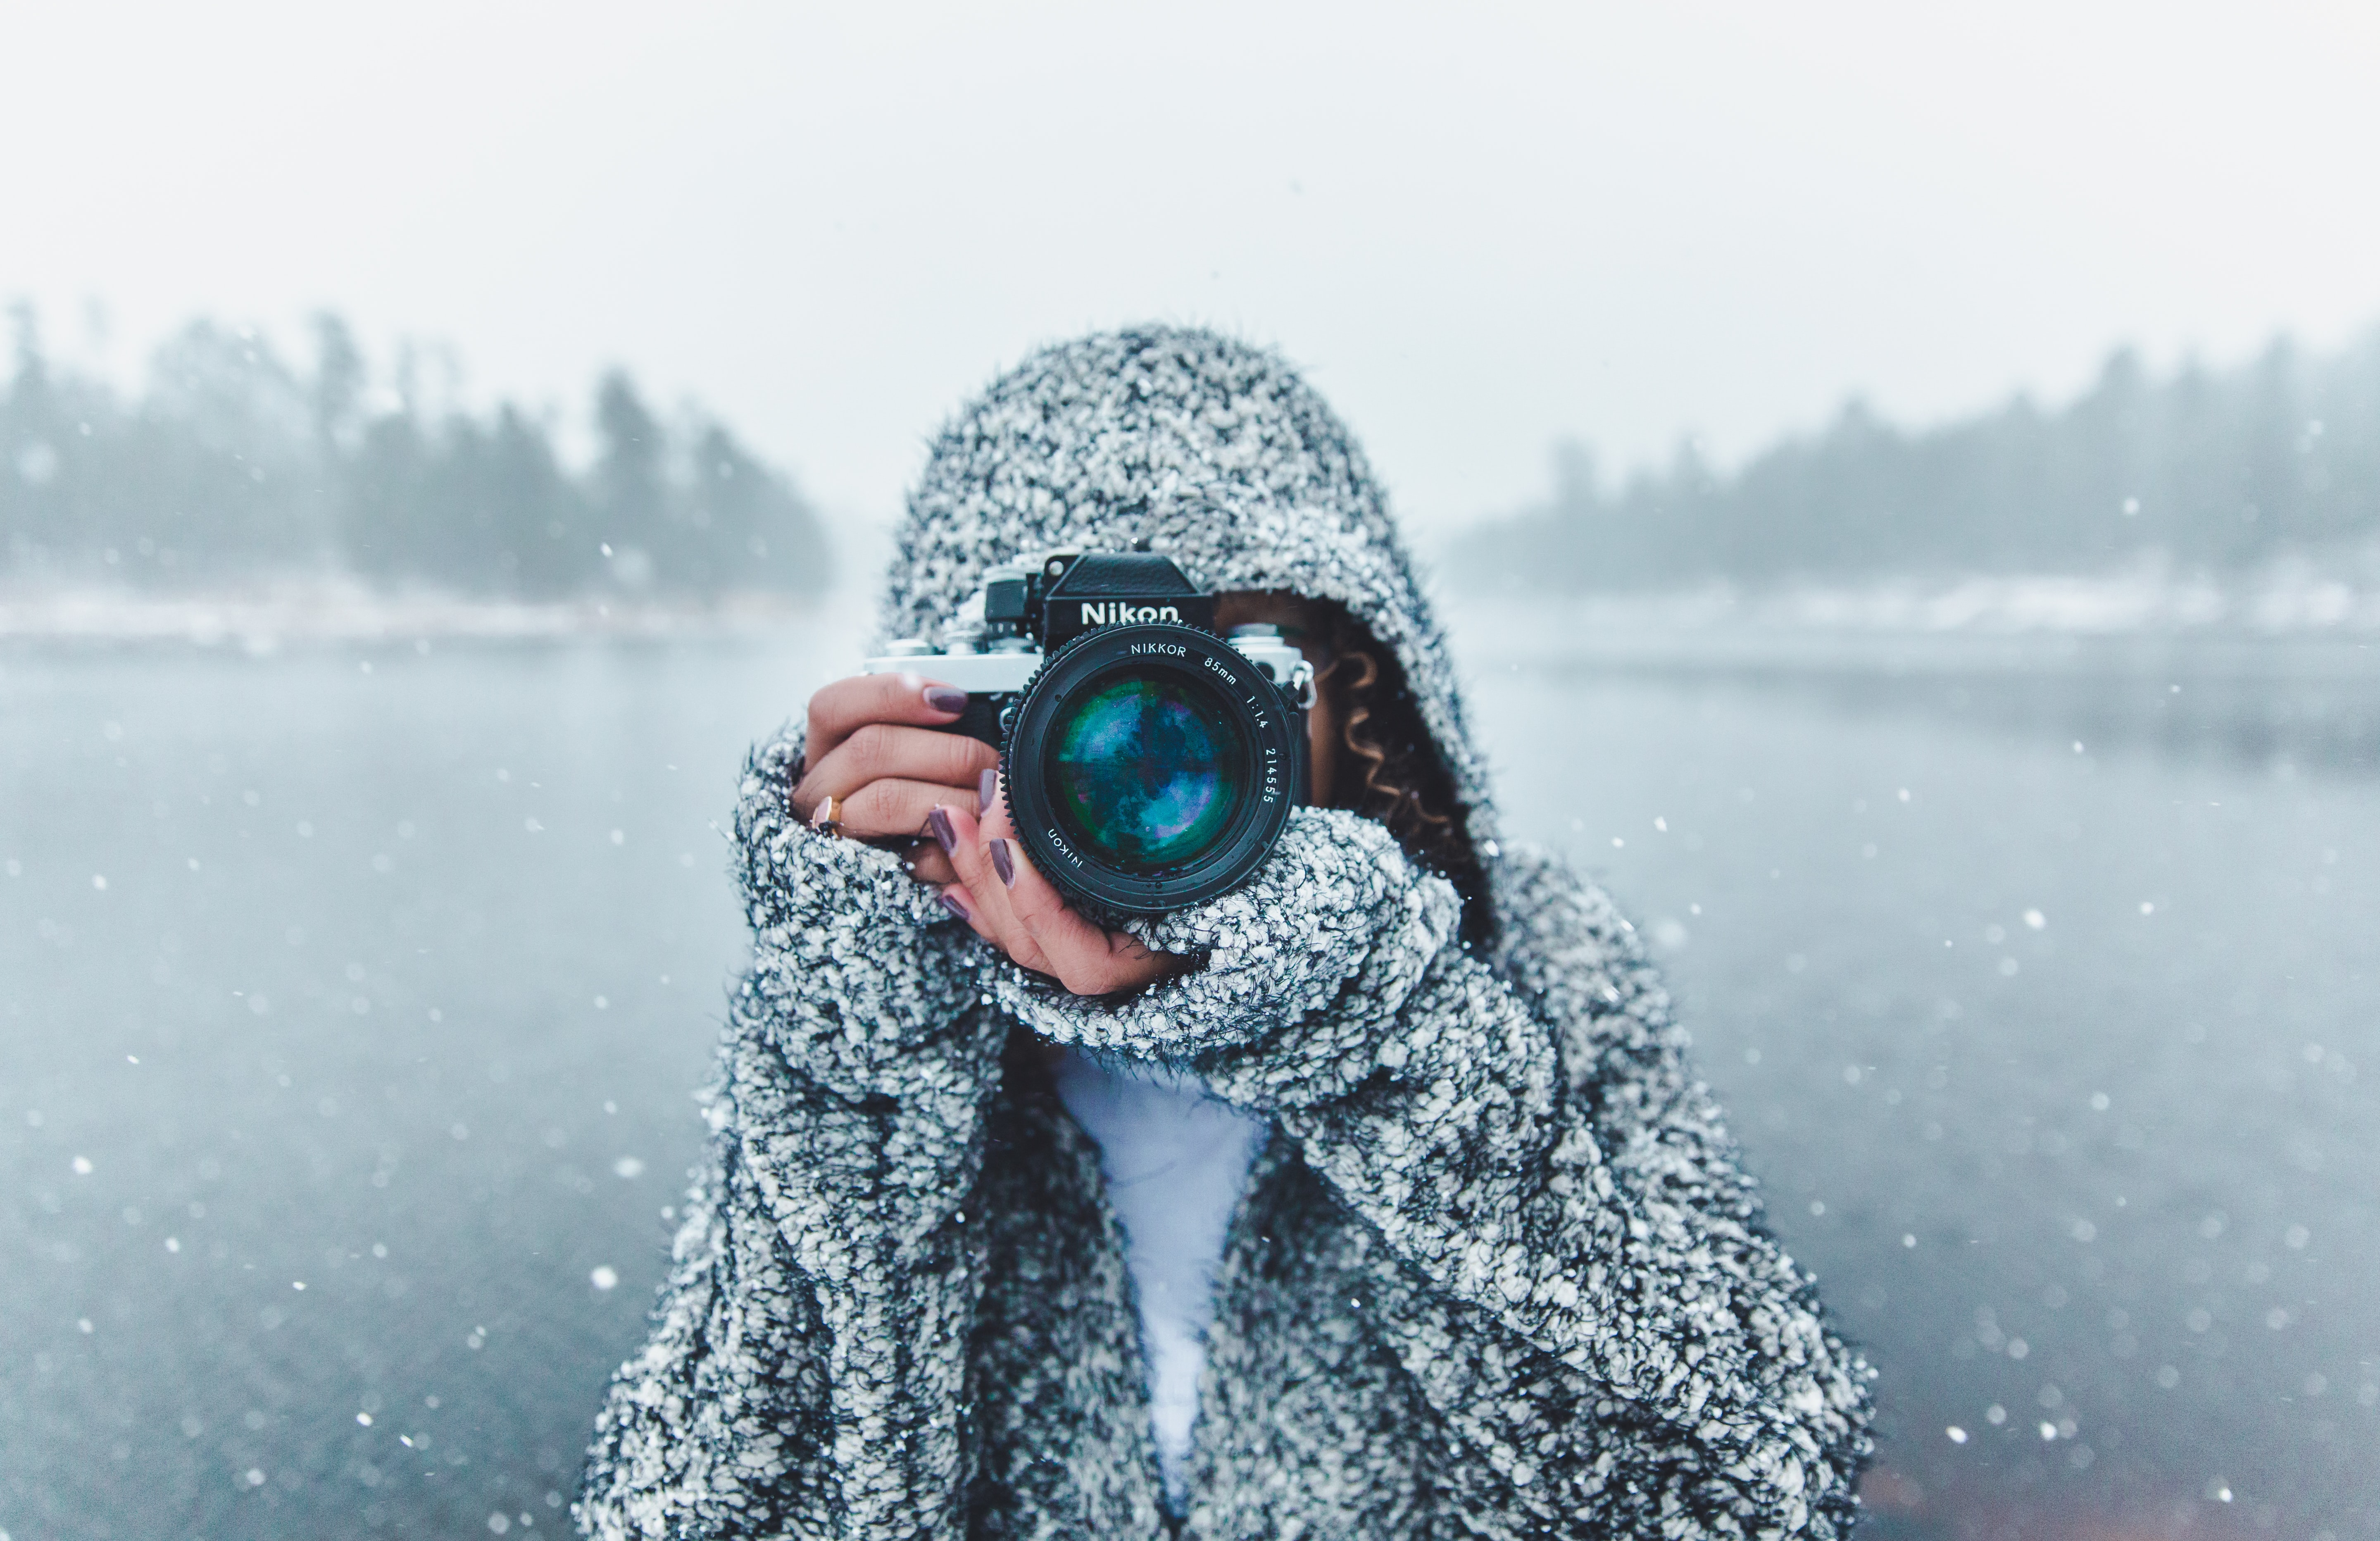 A lady with camera